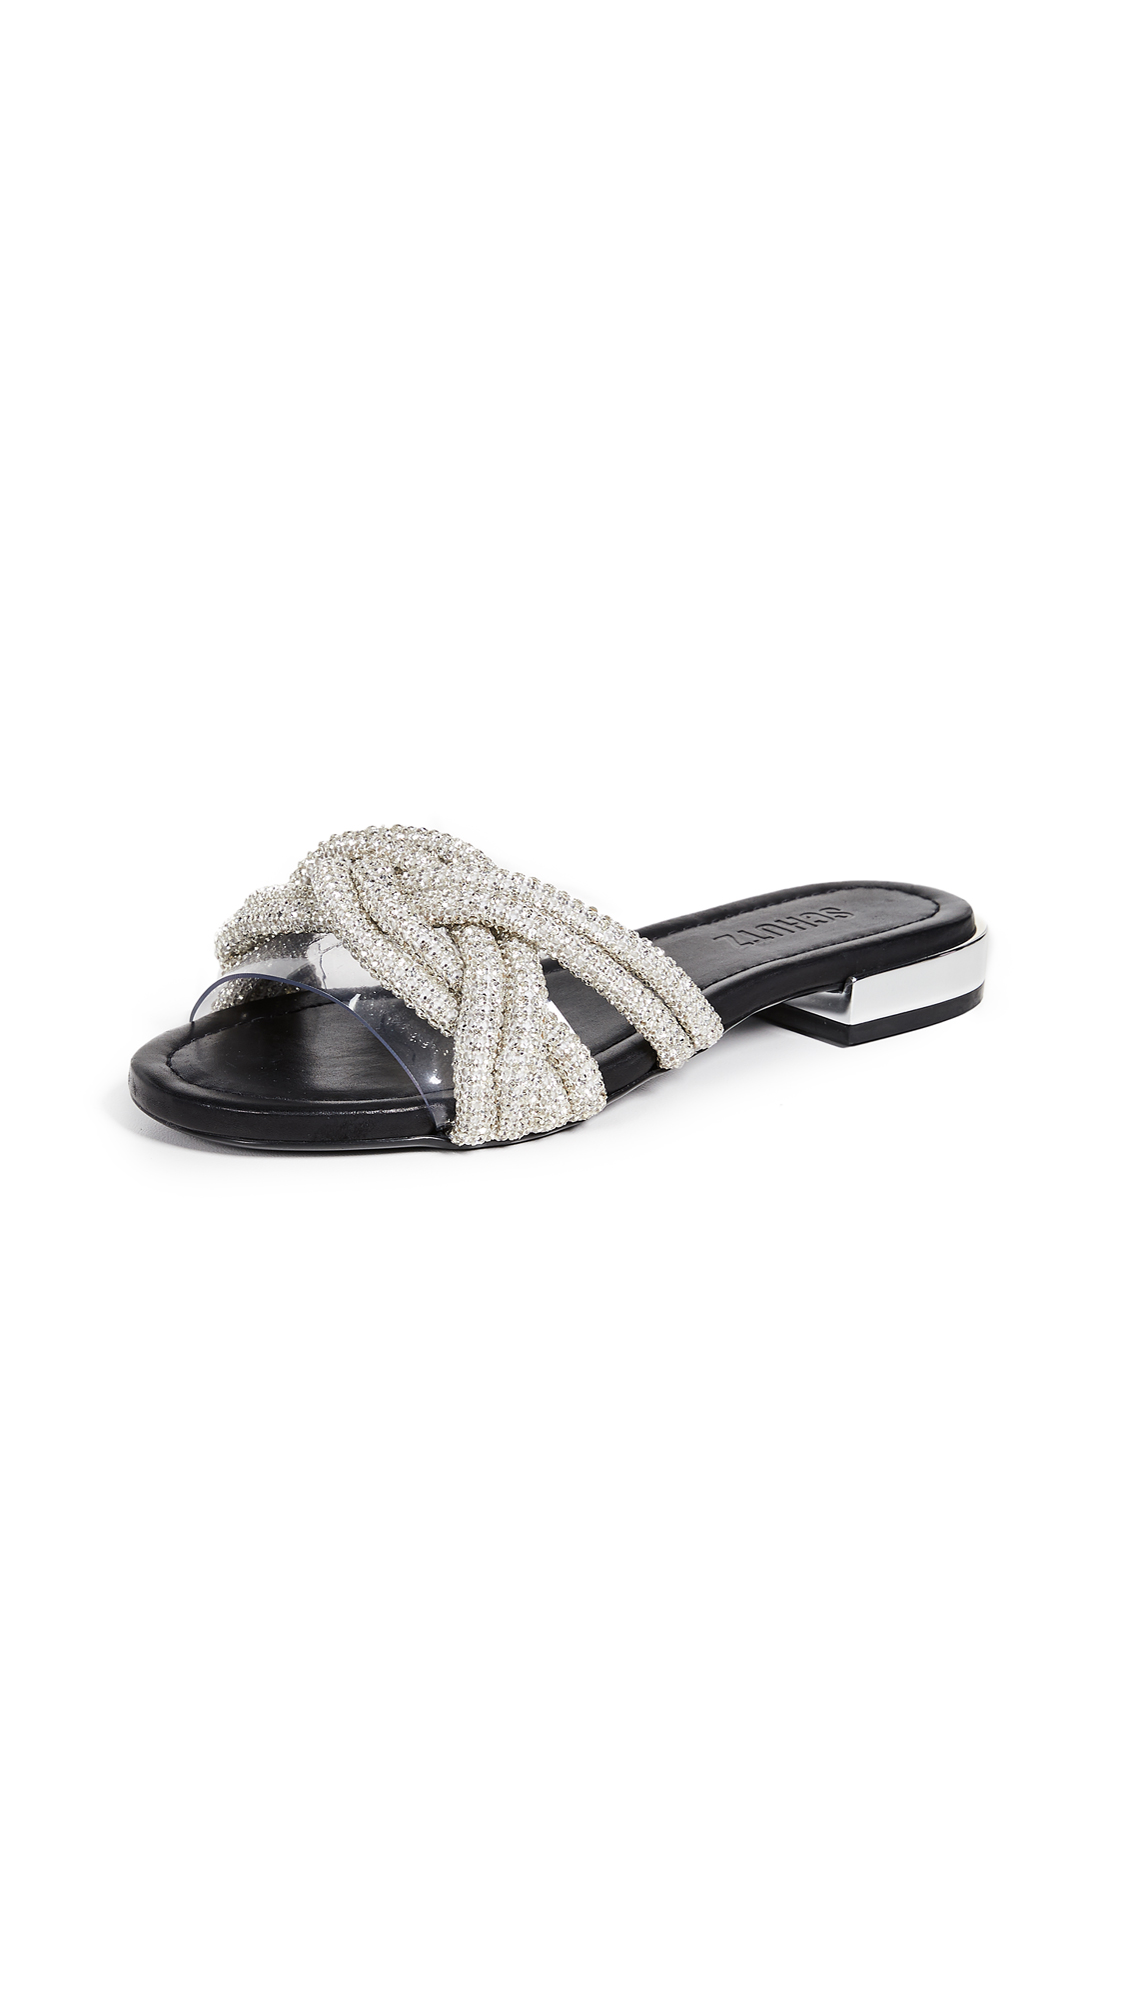 Schutz Lindy Flat Slides - Black/Transparent